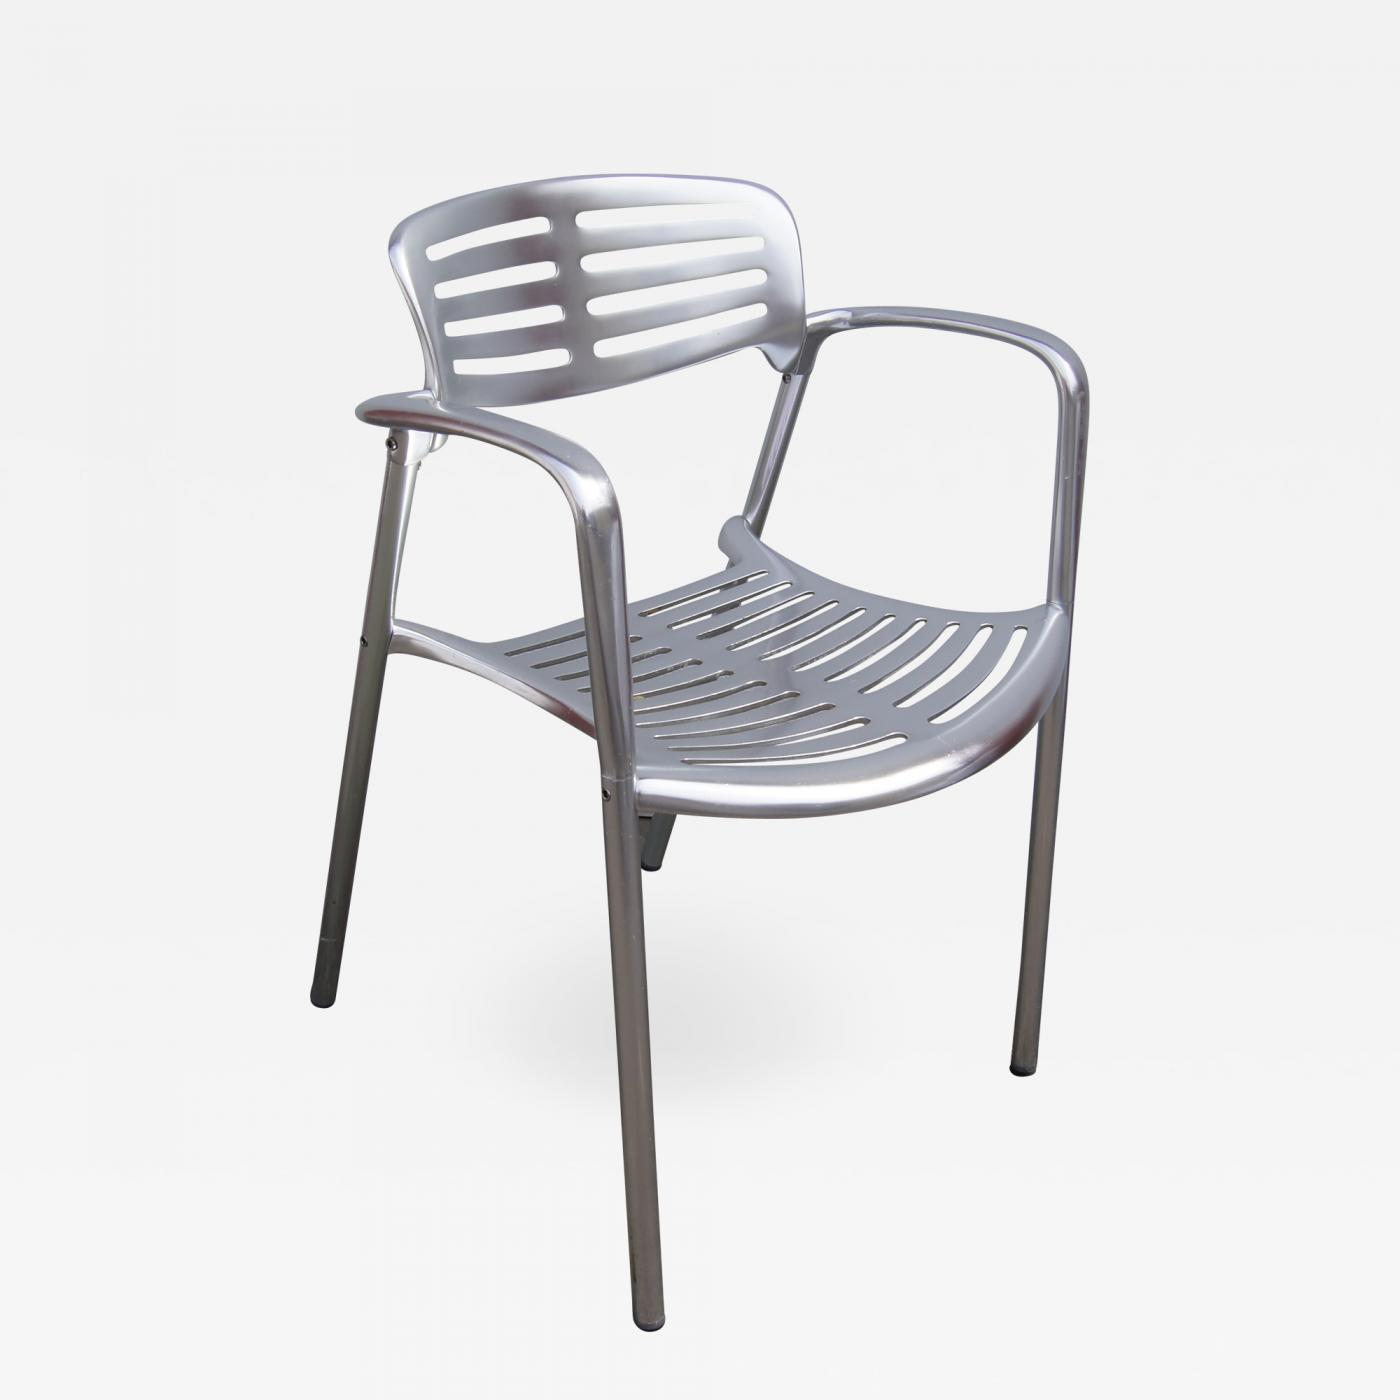 Aluminium outdoor toledo chair by jorge pensi for knoll